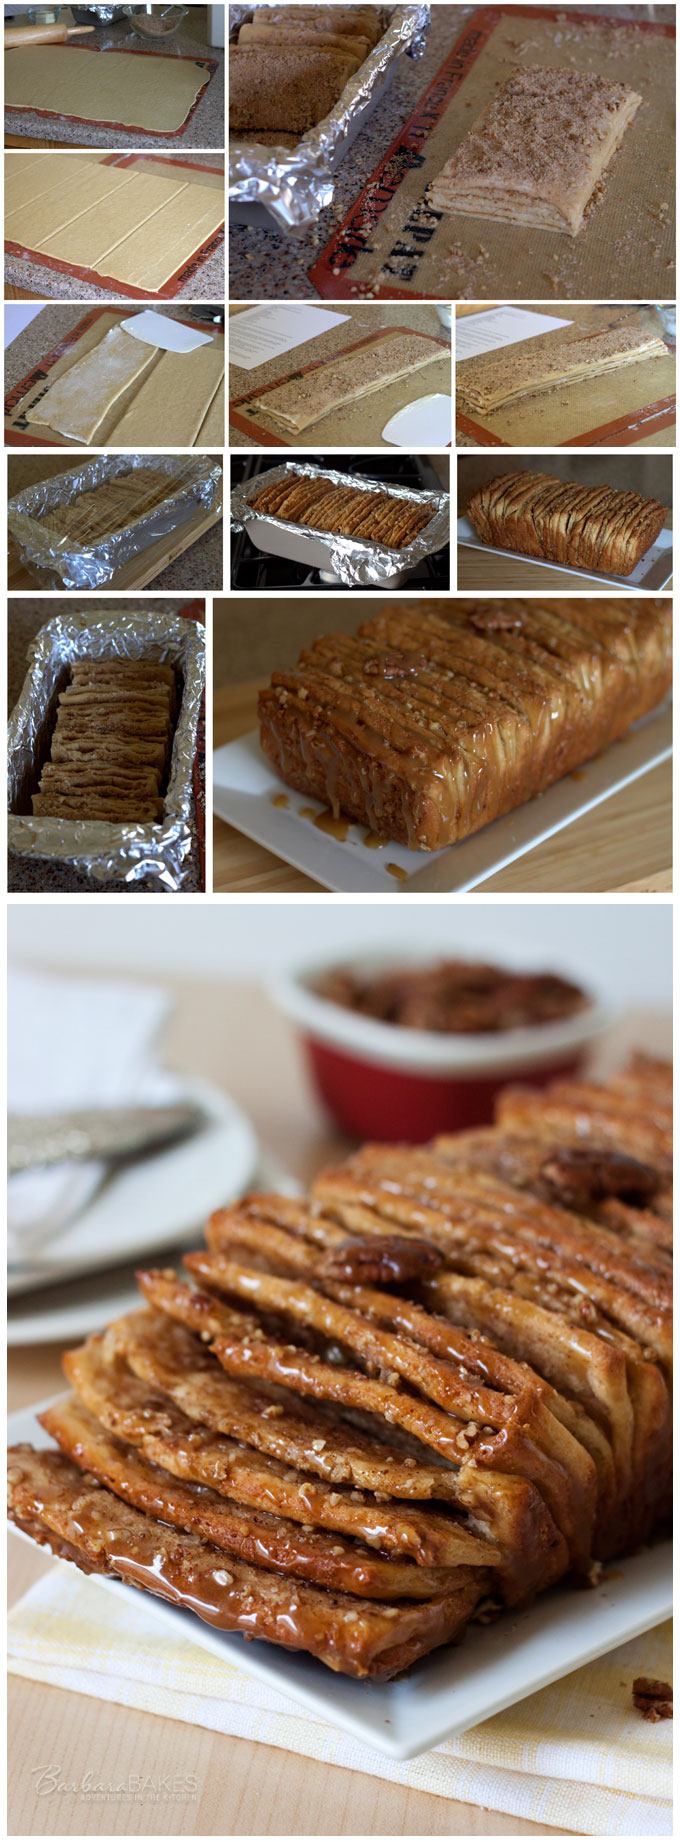 How to Make Whole Wheat Caramel Pecan Pull-Apart Bread